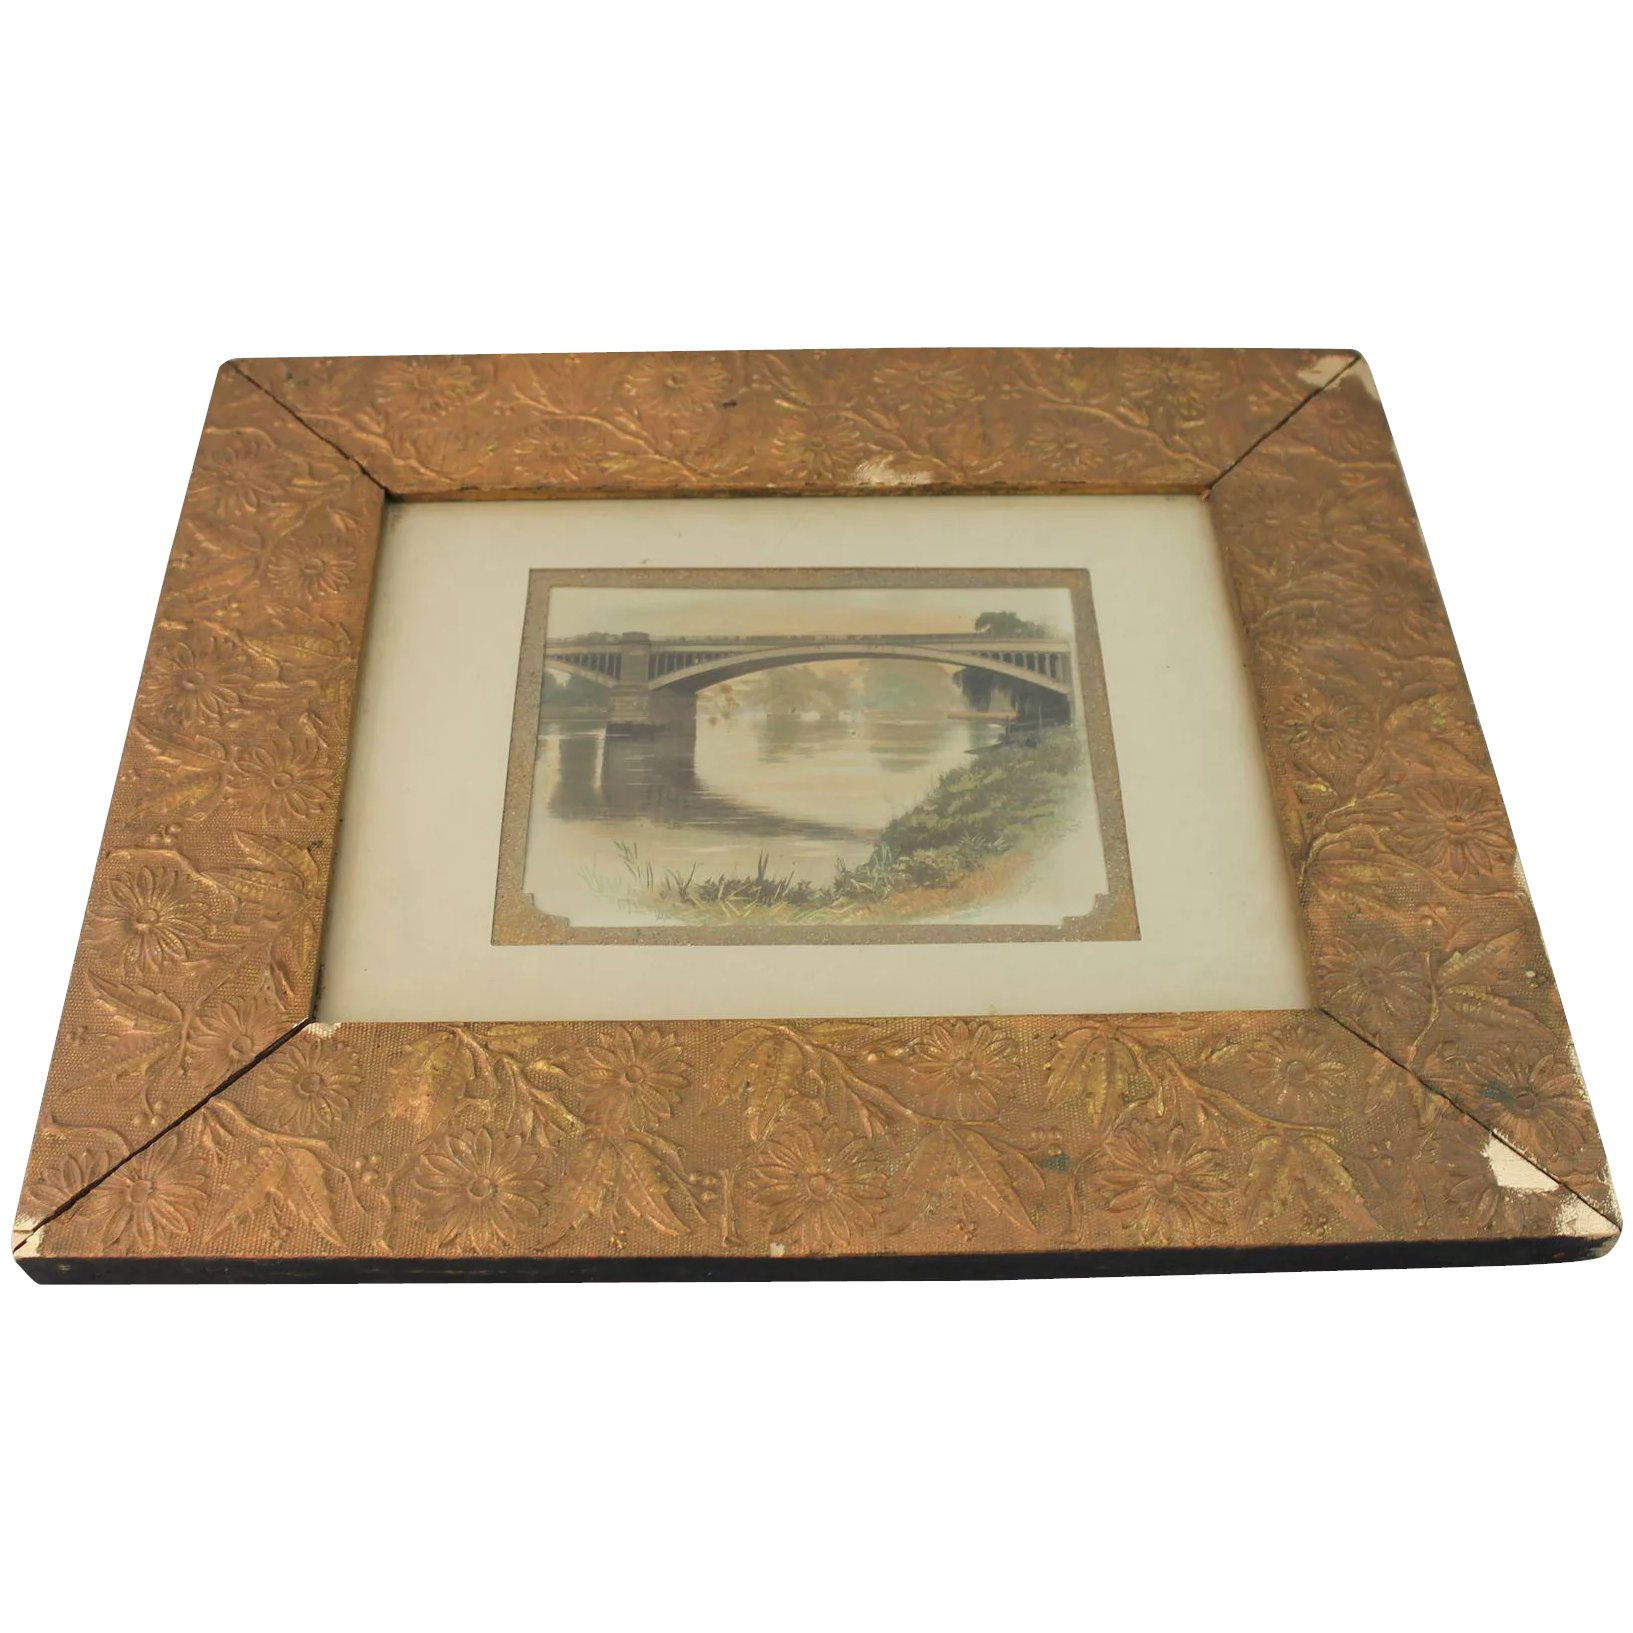 Aesthetic Movement Picture Mirror Frame Gesso Gold Painting 1880 David Lesurf Antiques And Art Ruby Lane